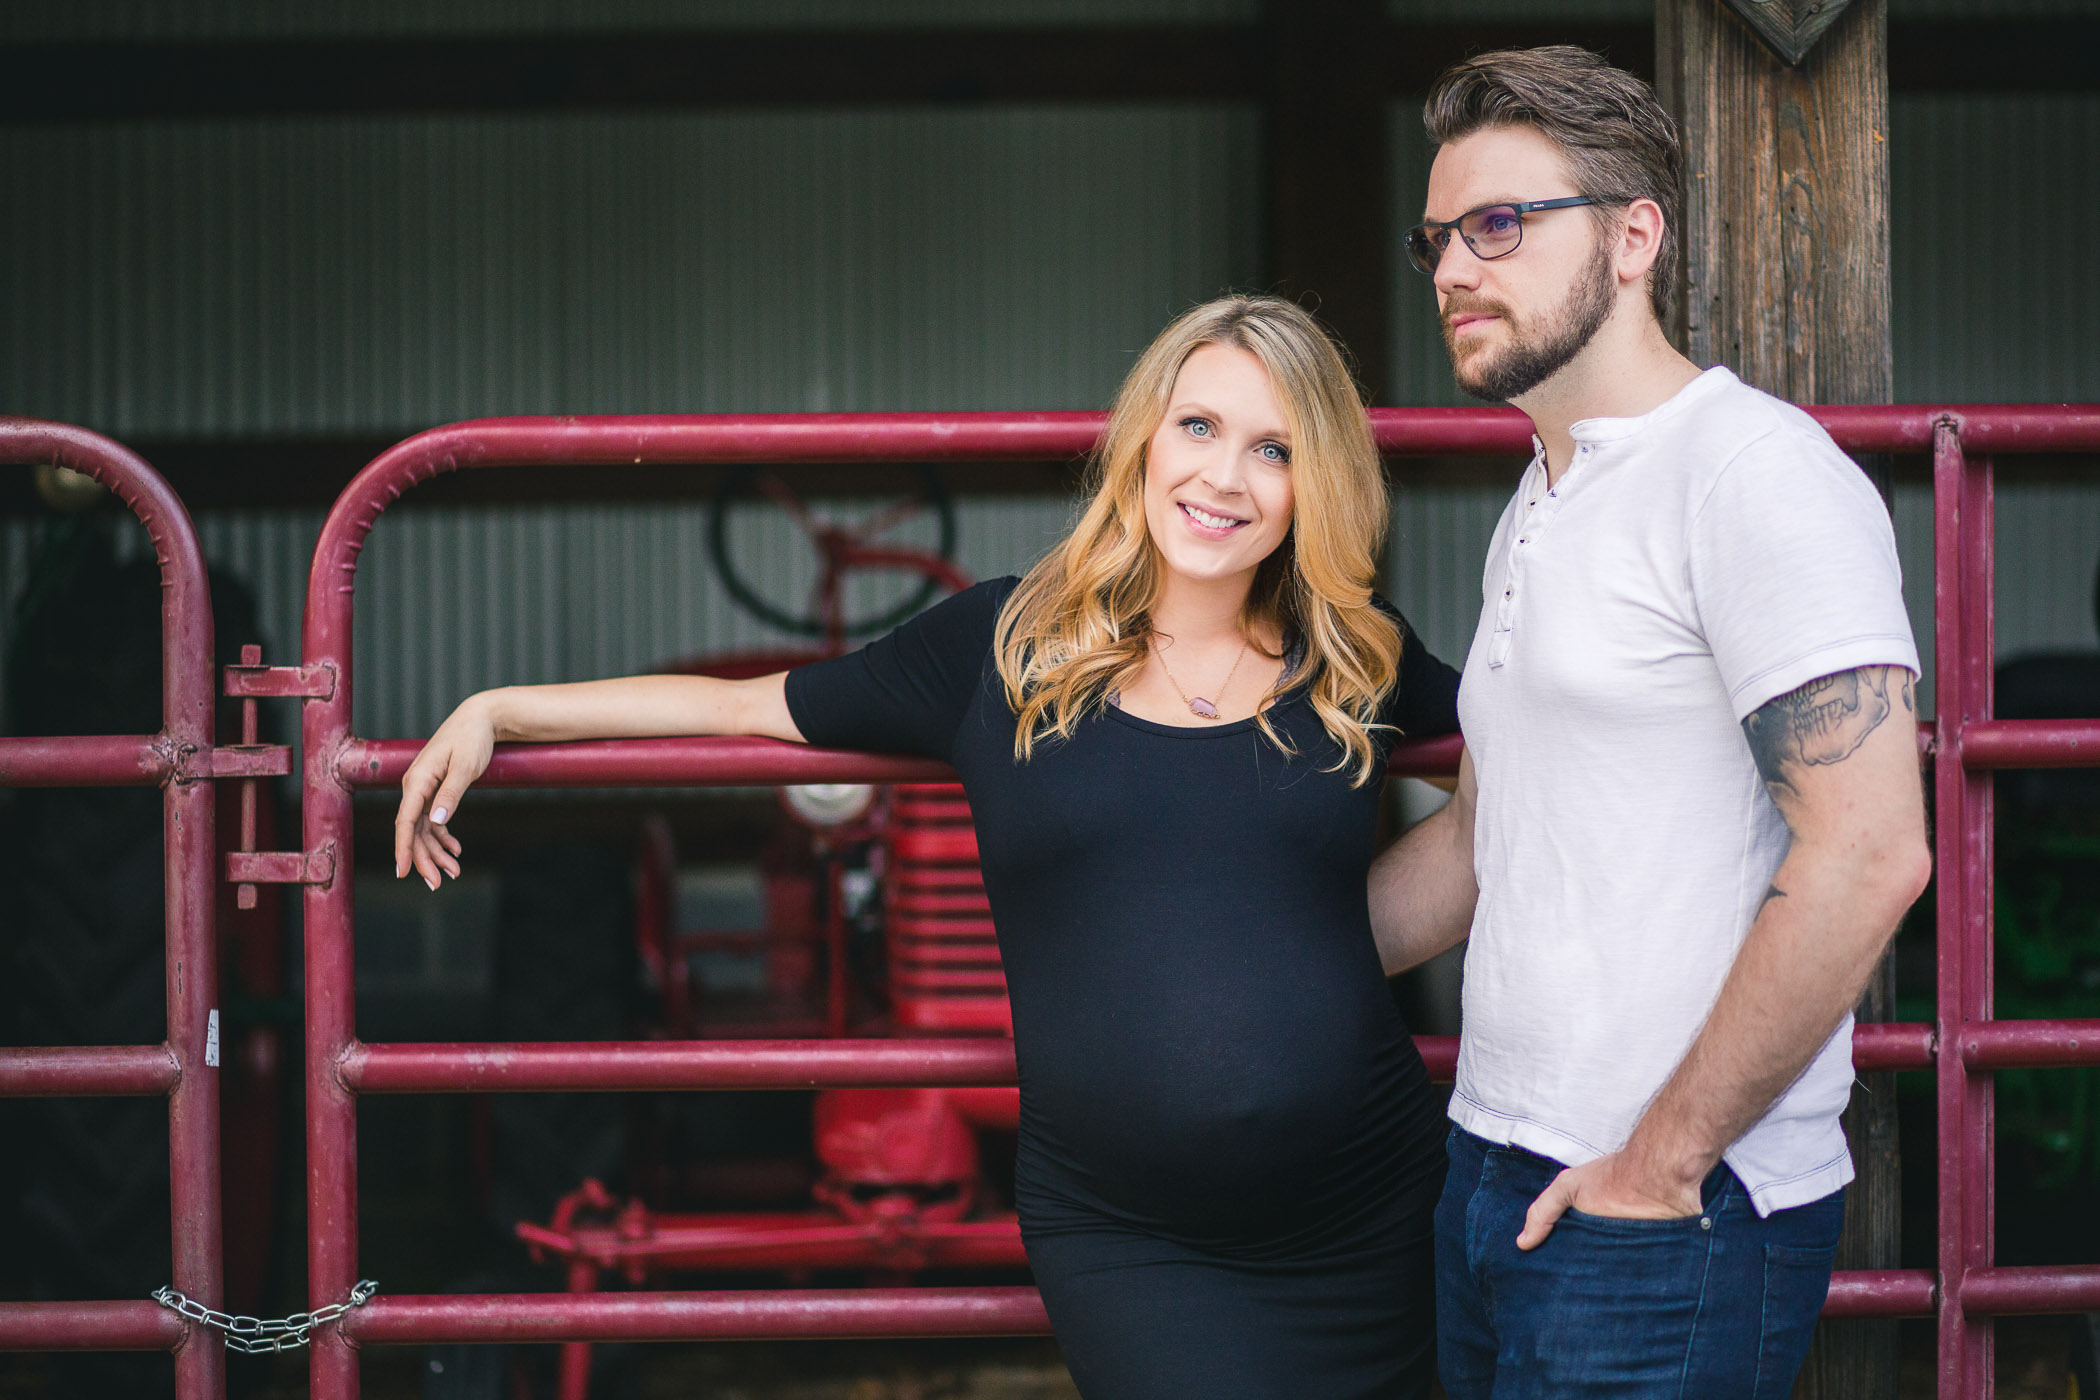 A Maternity Session from Greg Ferko at Kinder Farm Park 07